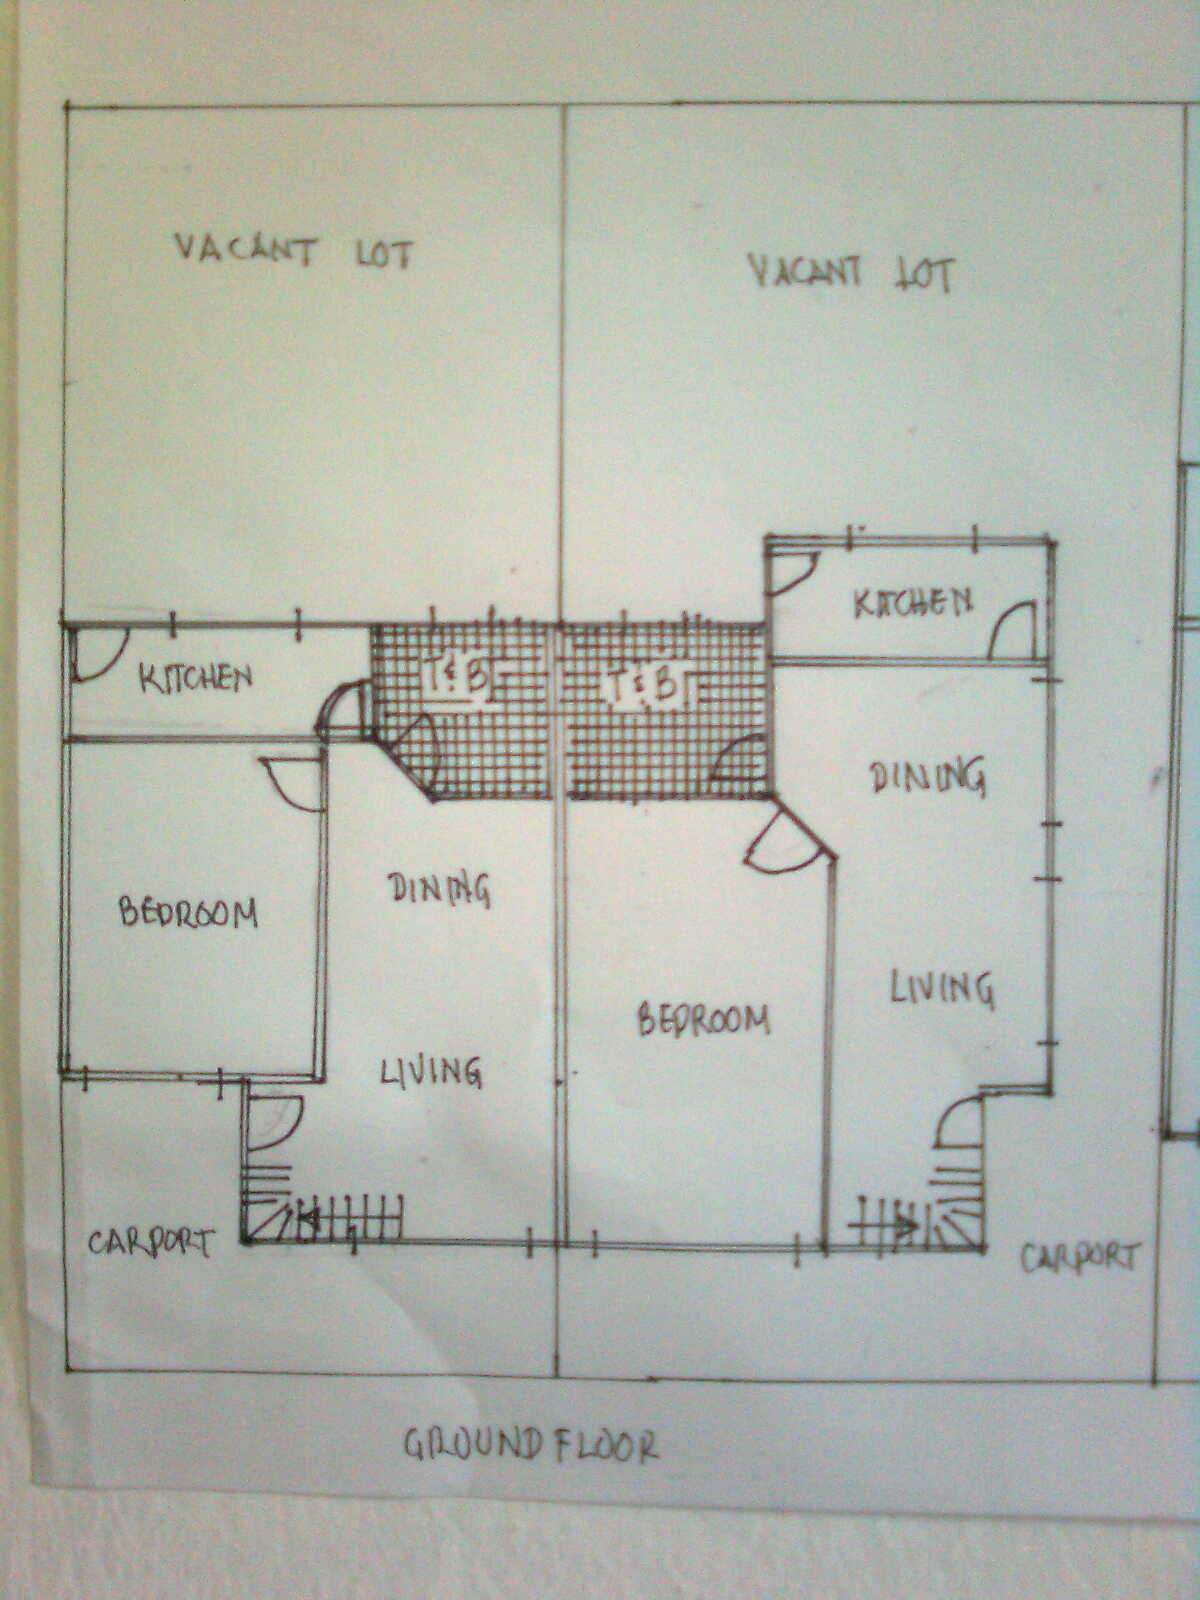 floor plan -grondfloor